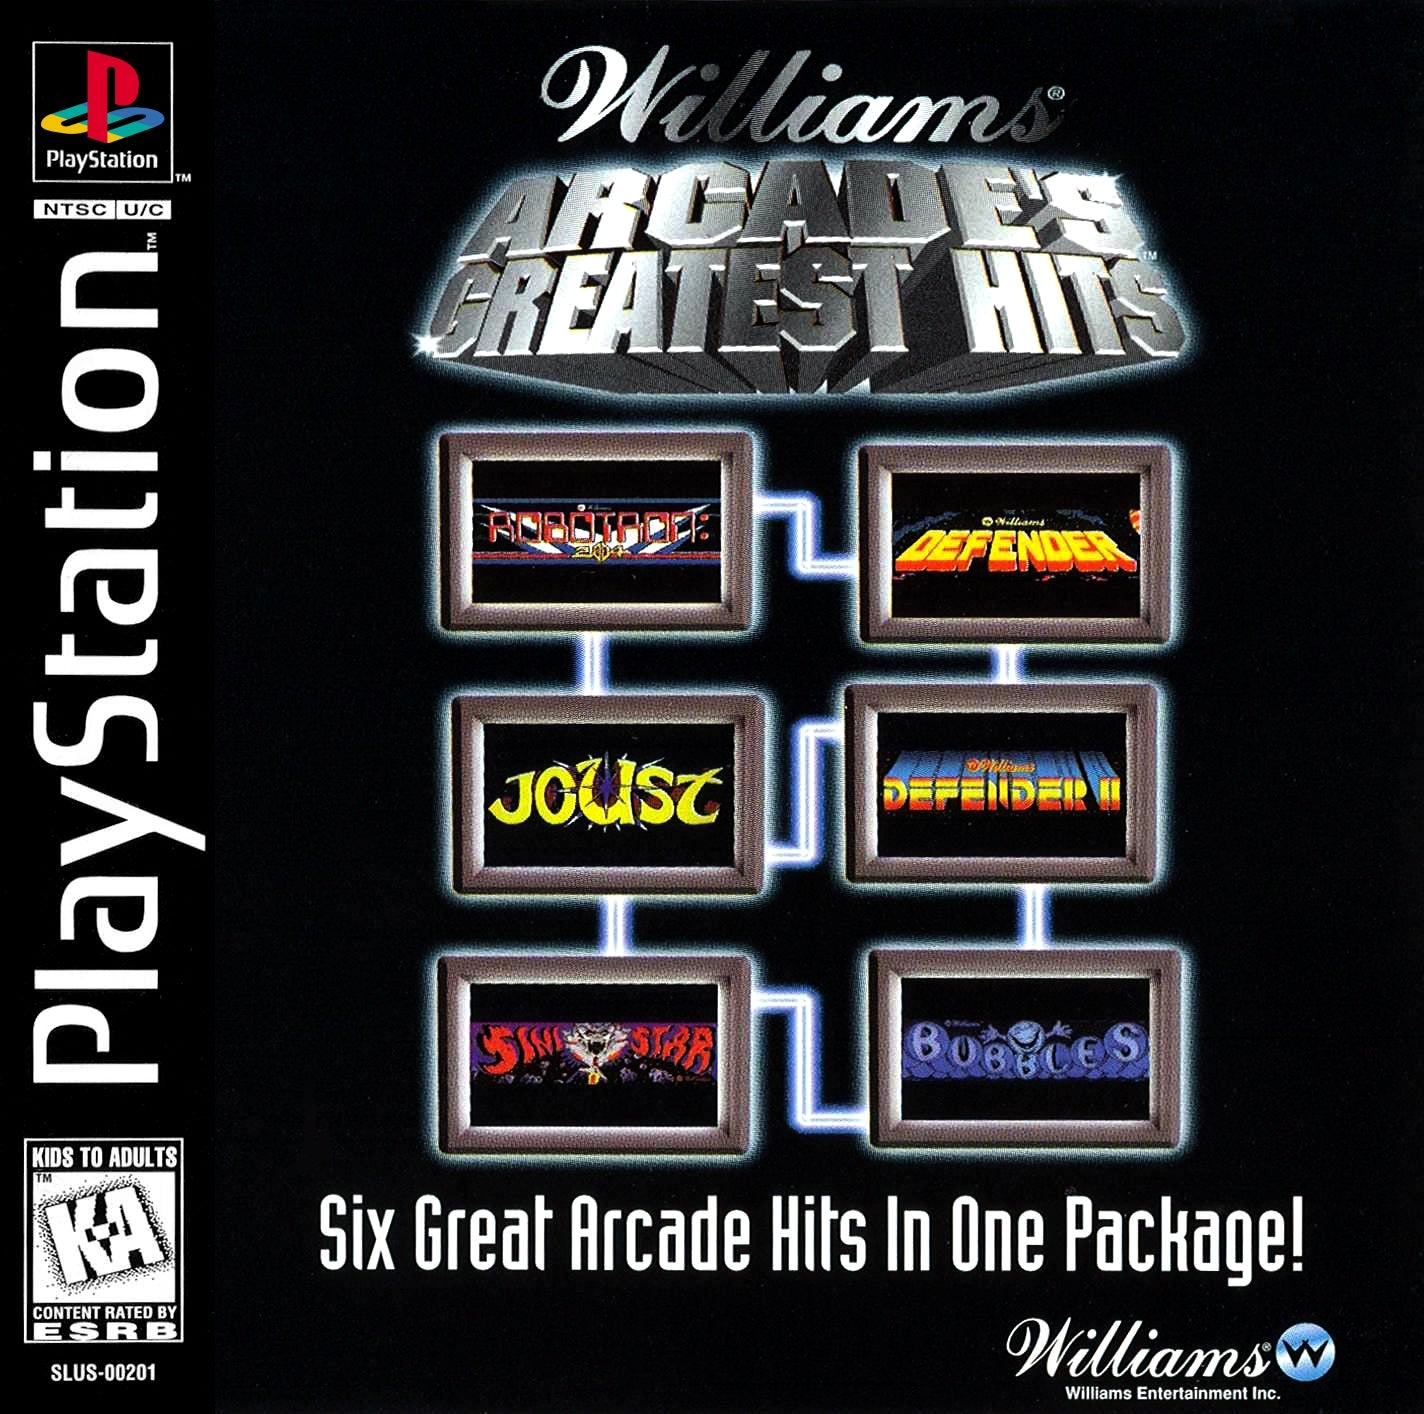 Williams Arcade's Greatest Hits - PS1 (Pre-owned)